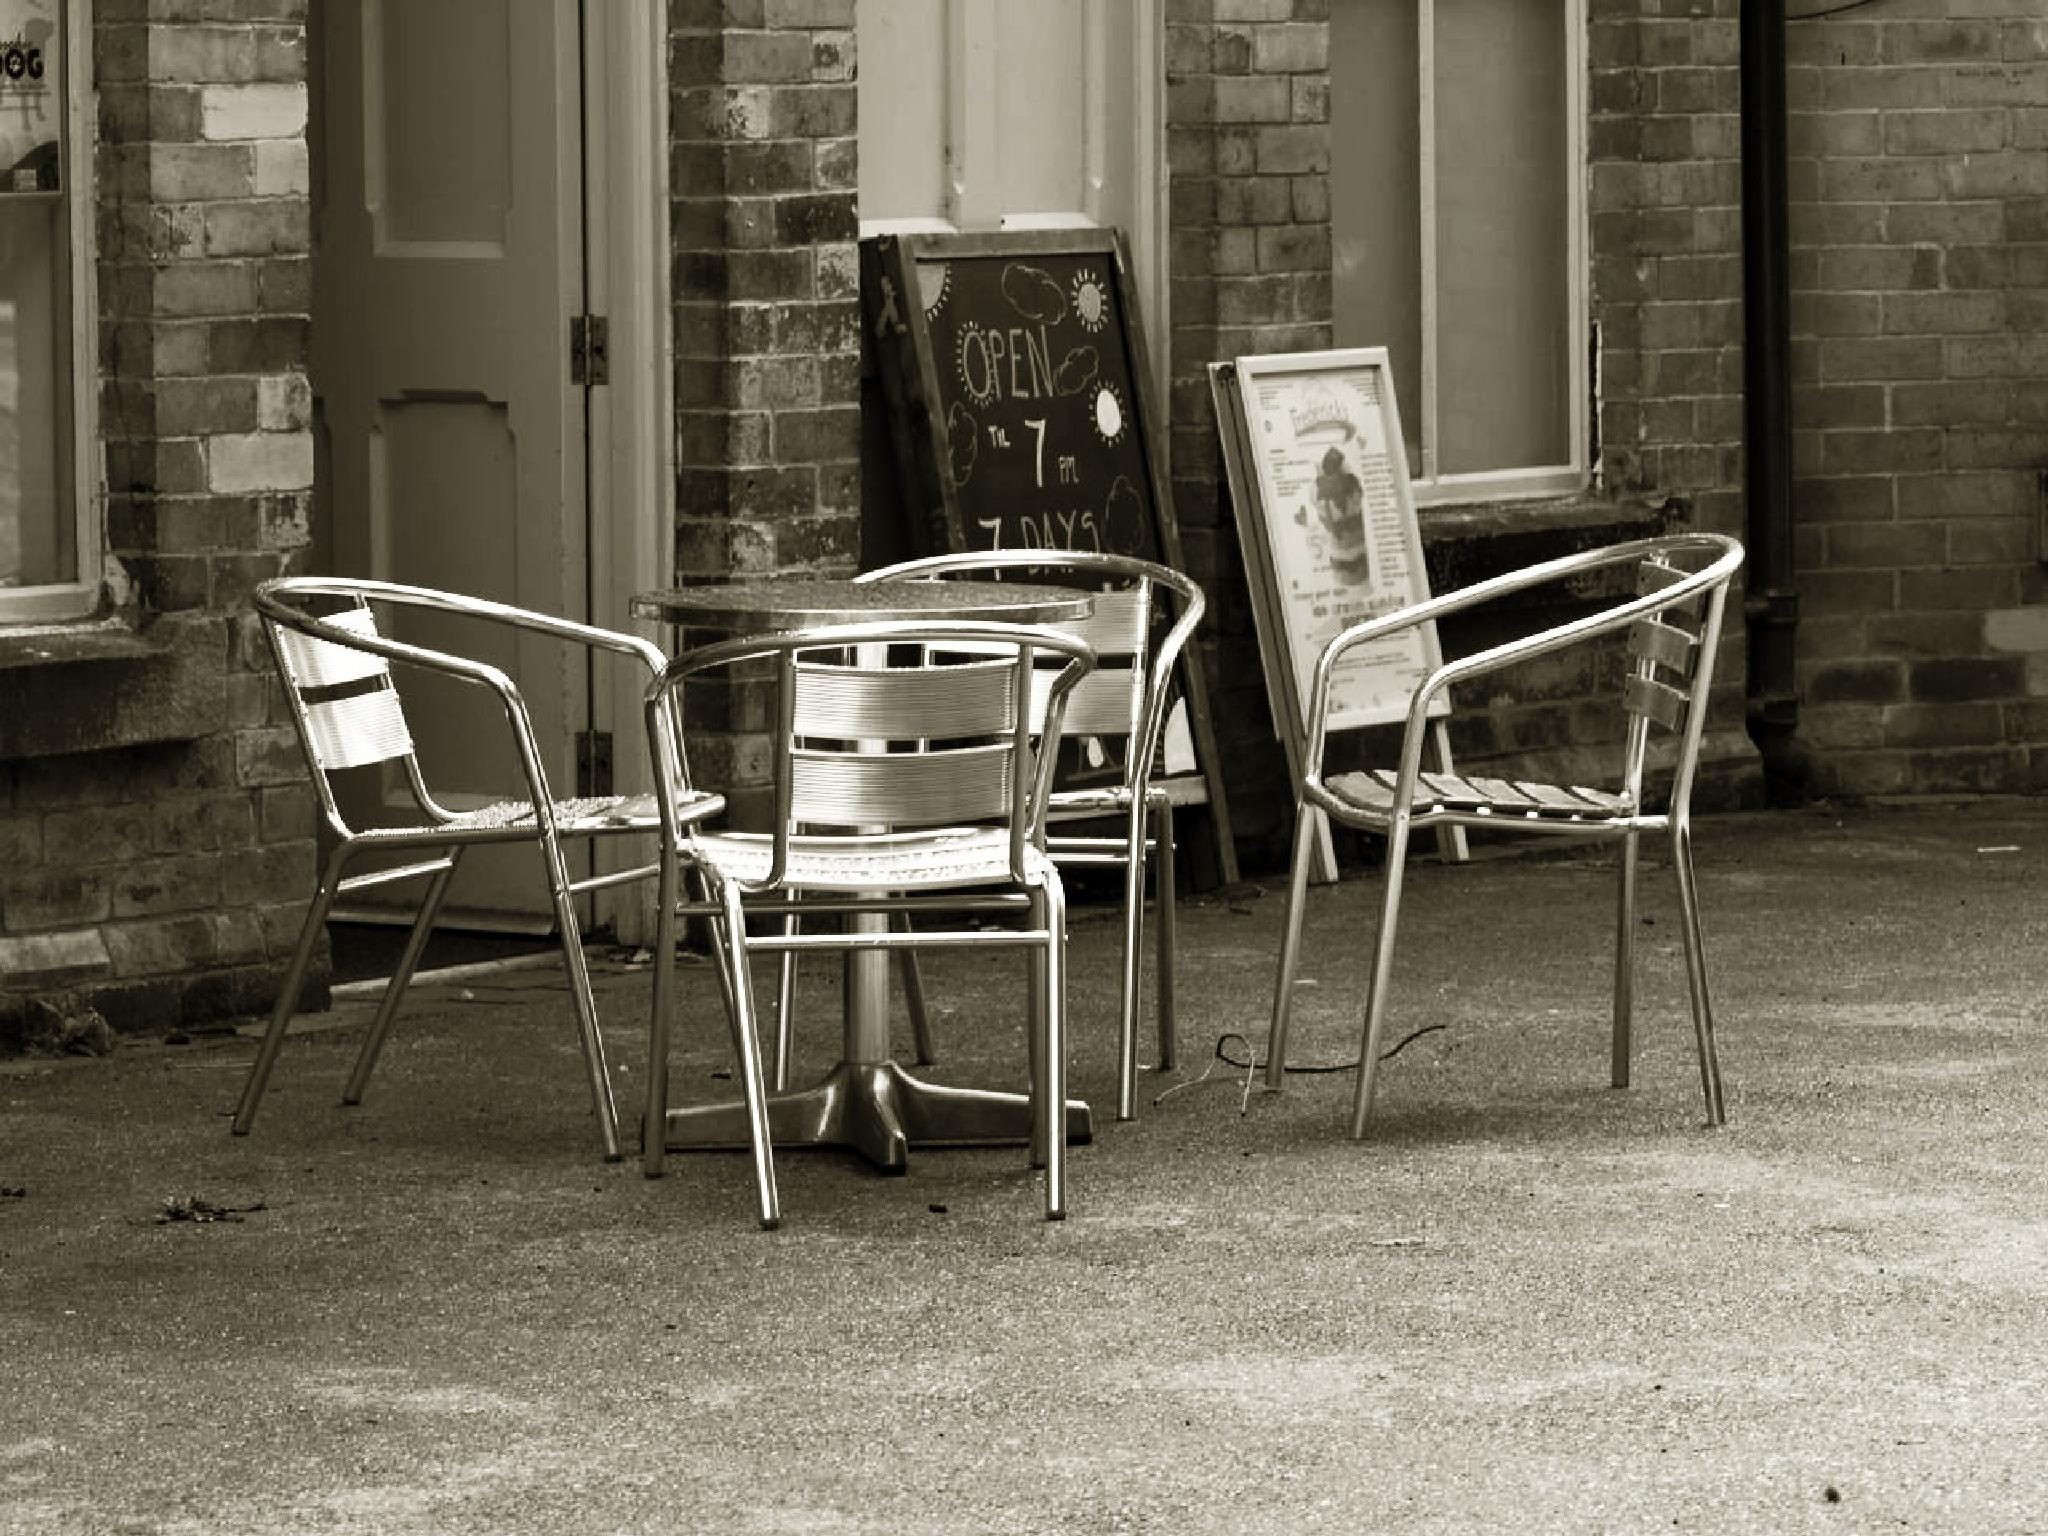 Empty chairs by Happy Snapper